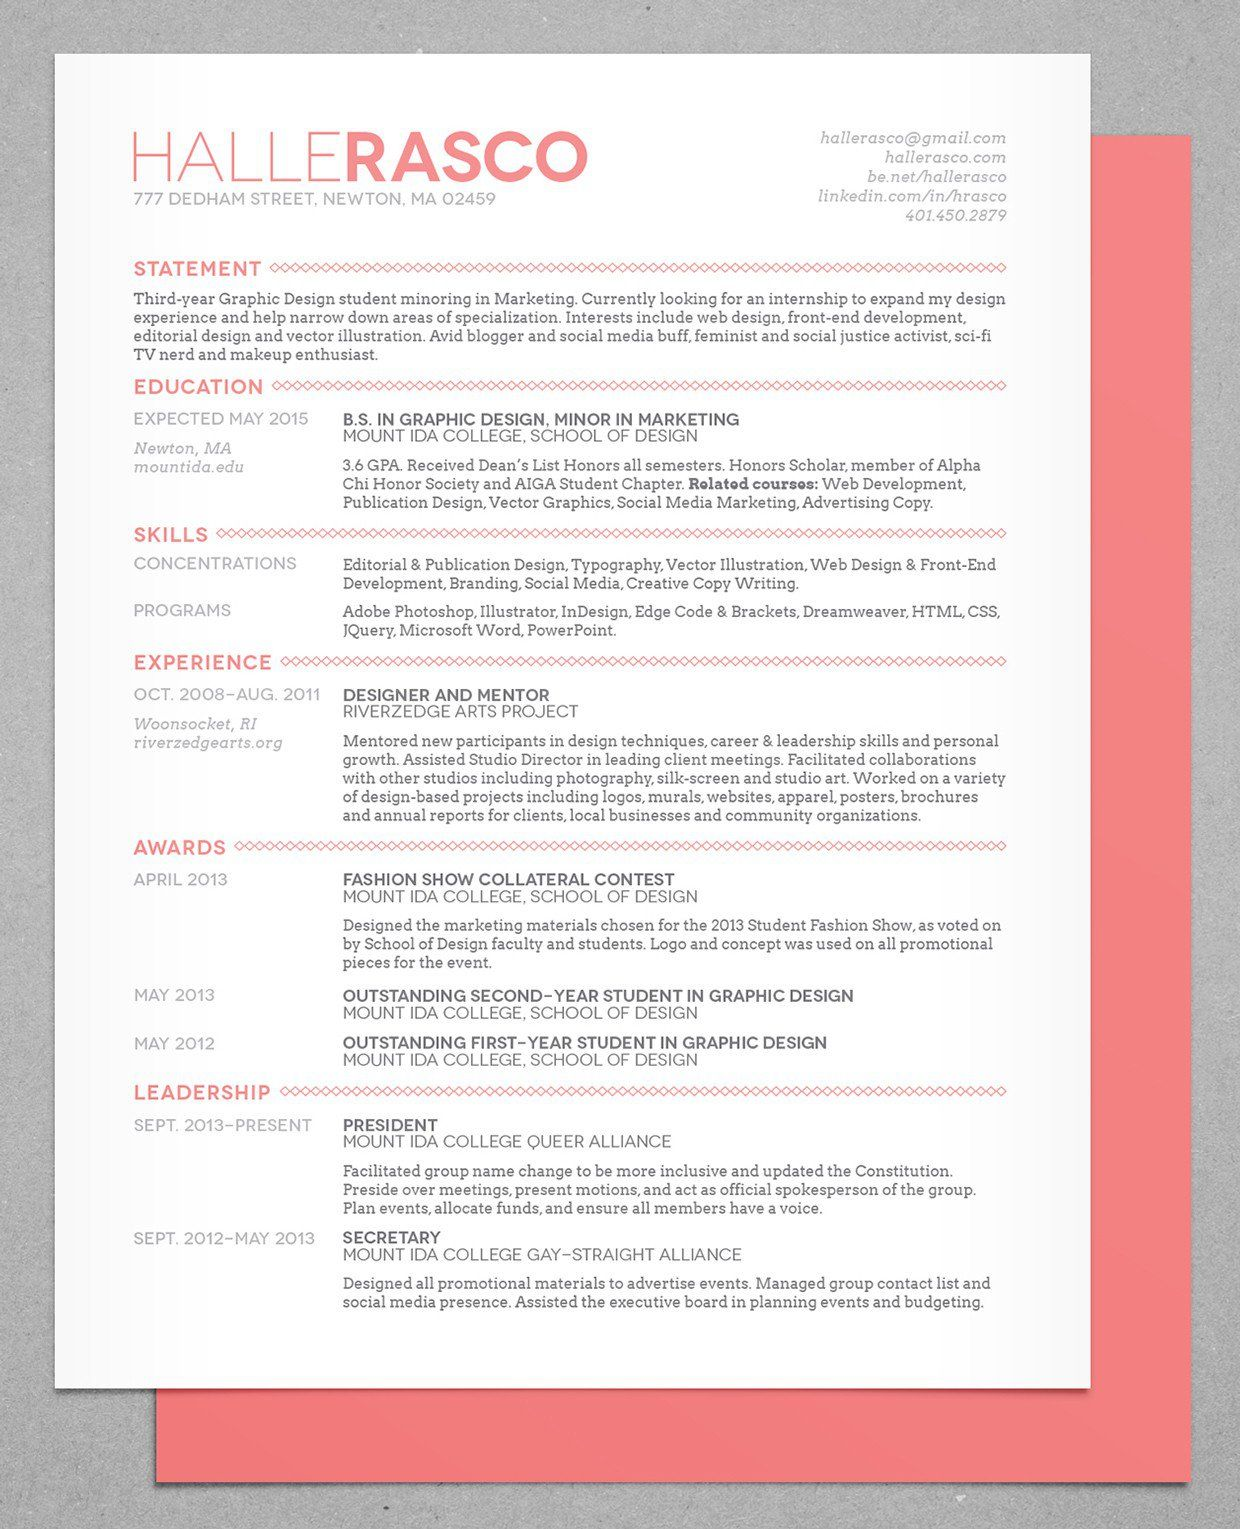 Resume Design Creative, Resume